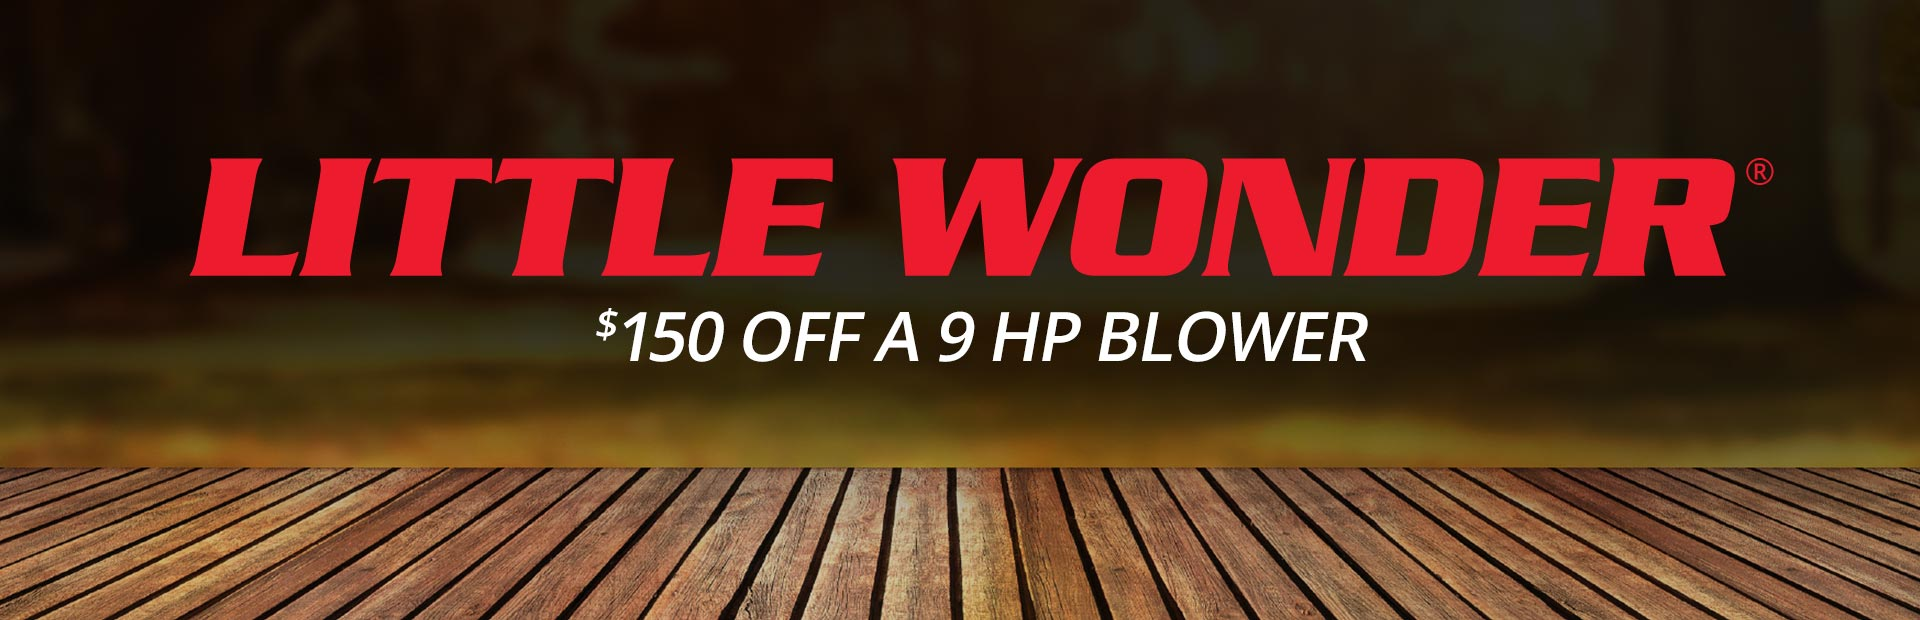 Little Wonder: $150 off a 9 HP Blower